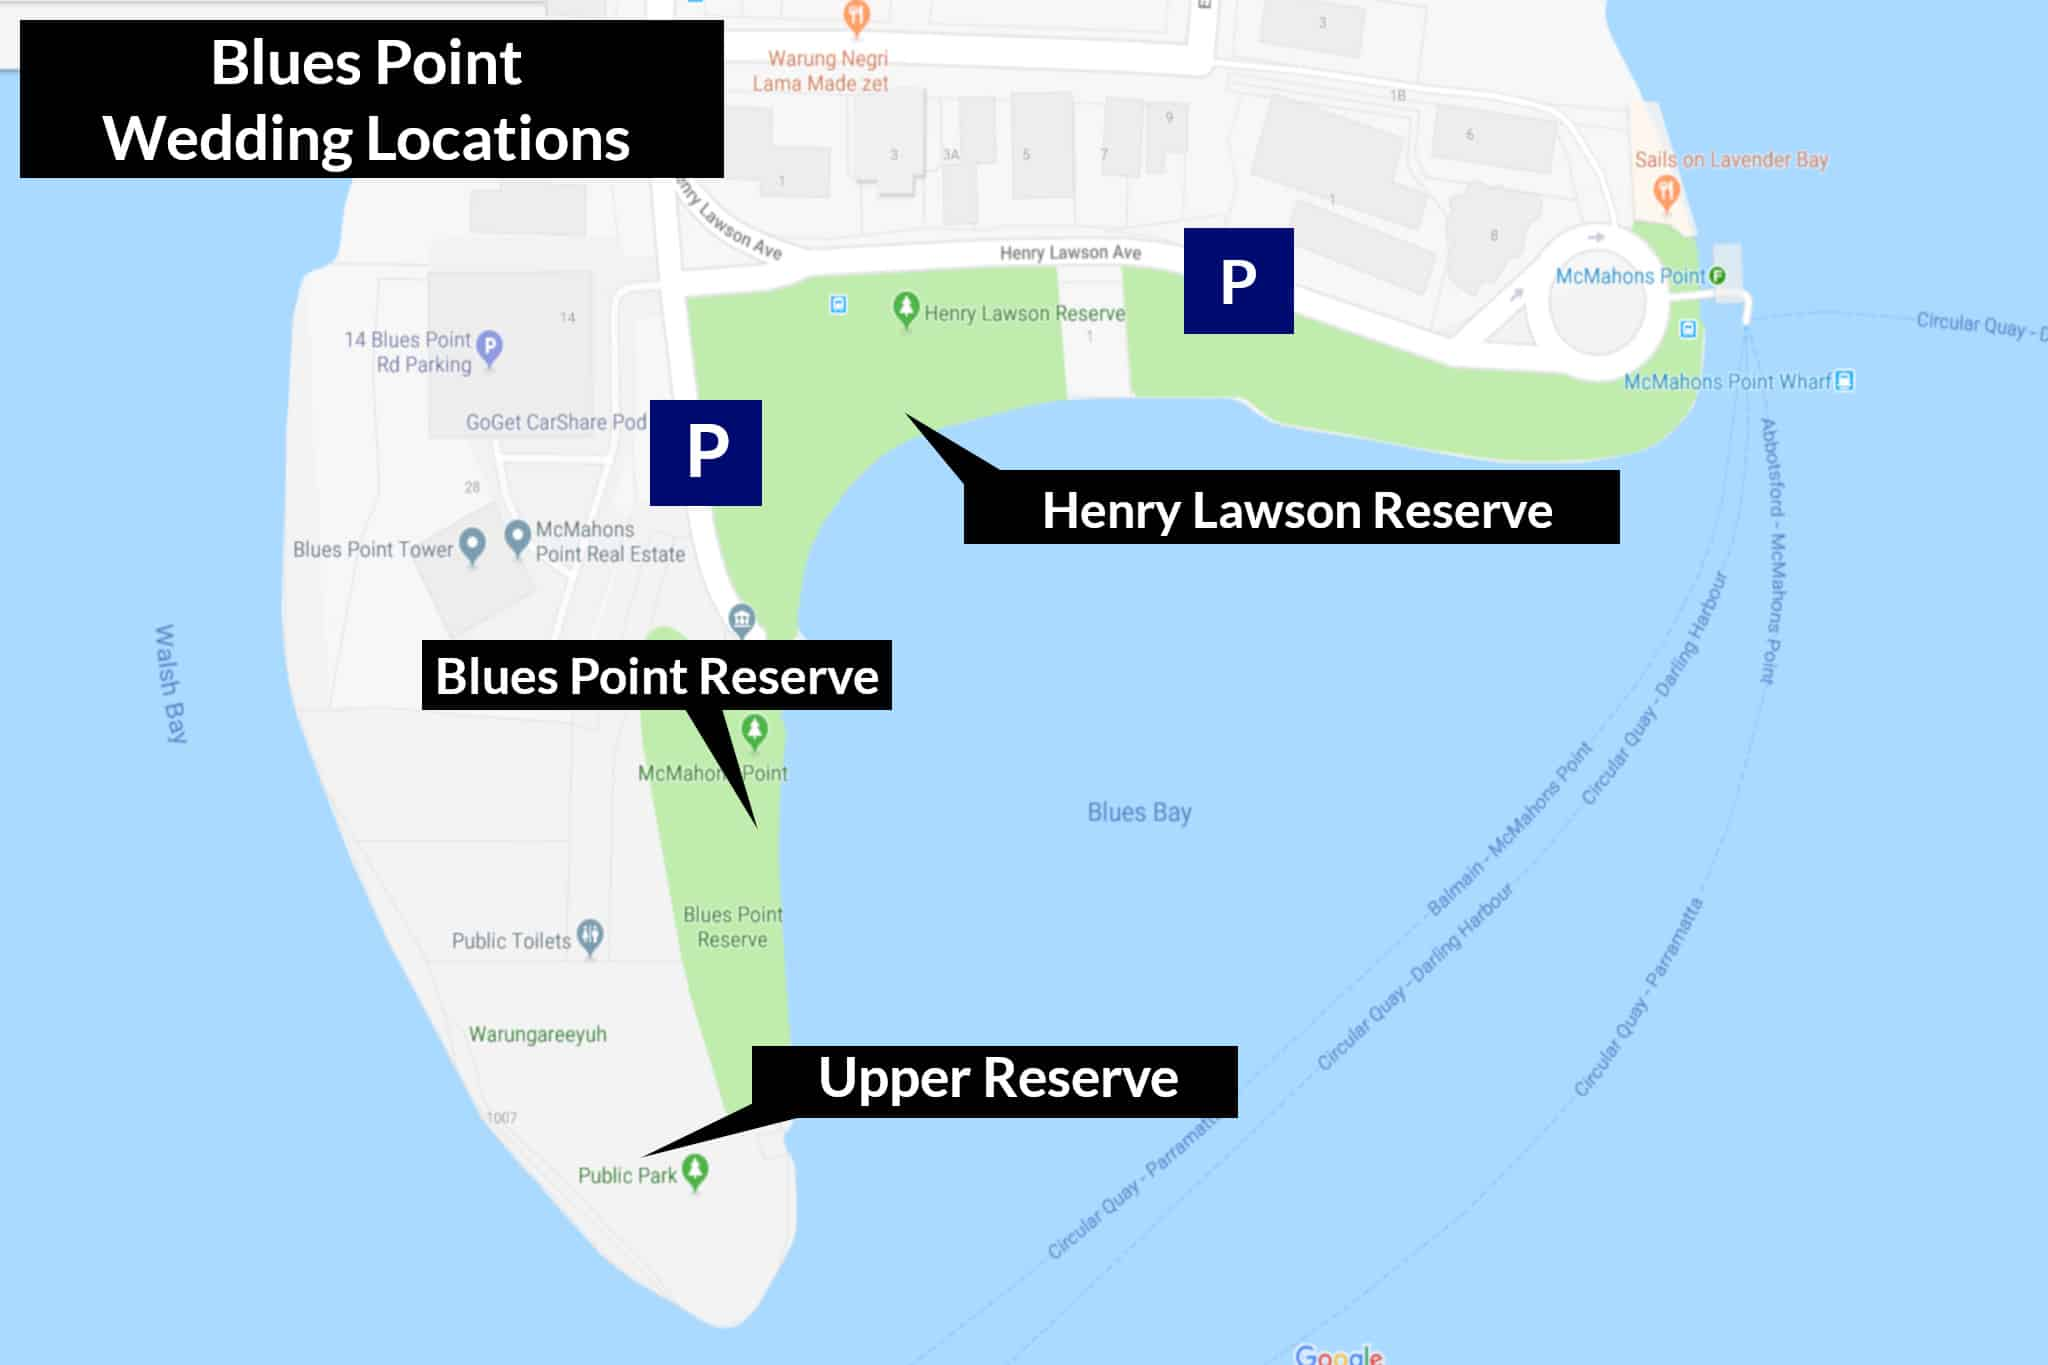 Blues Point Wedding Locations